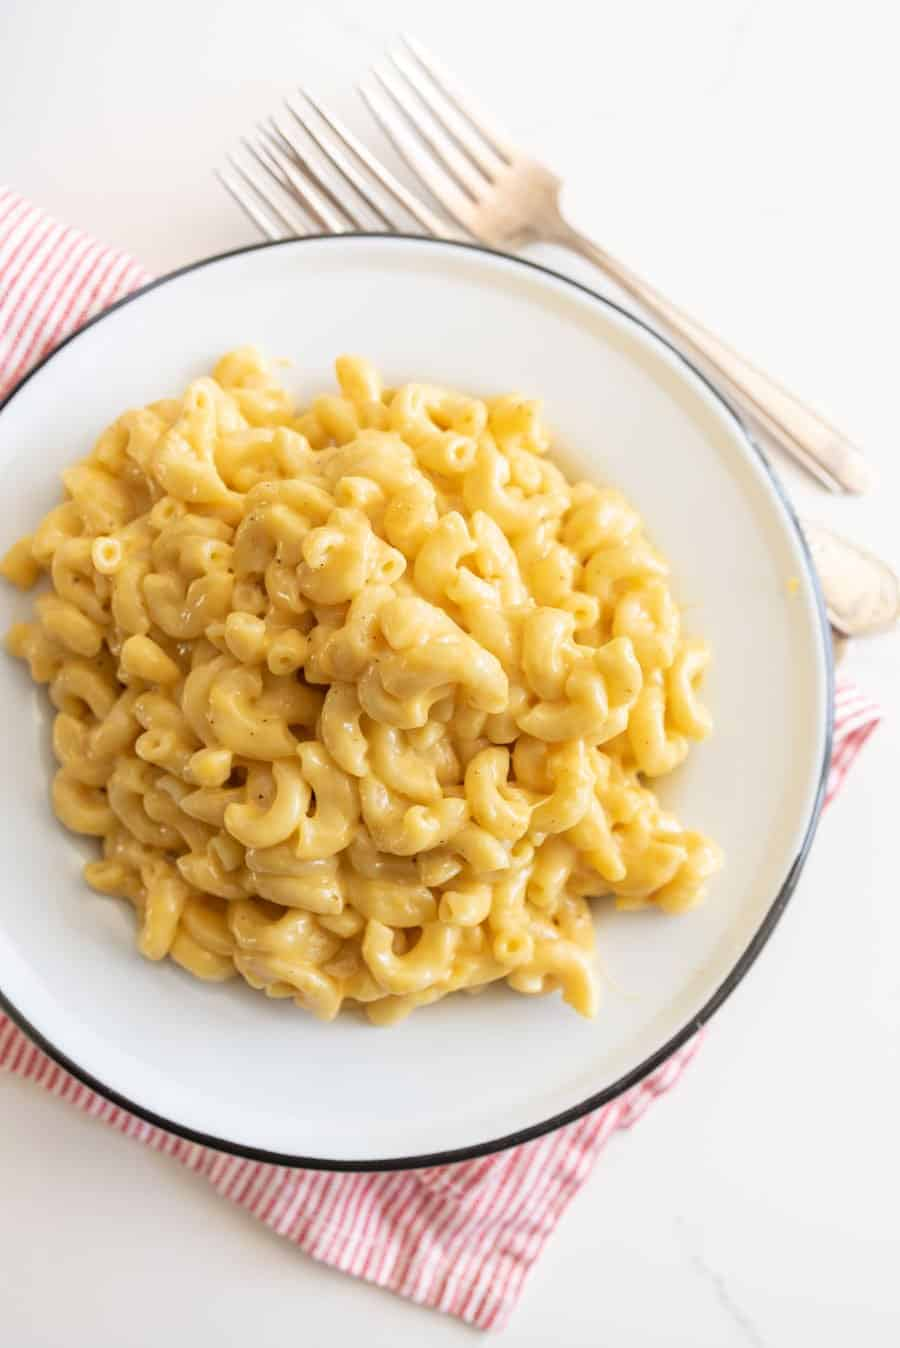 macaroni on white plate